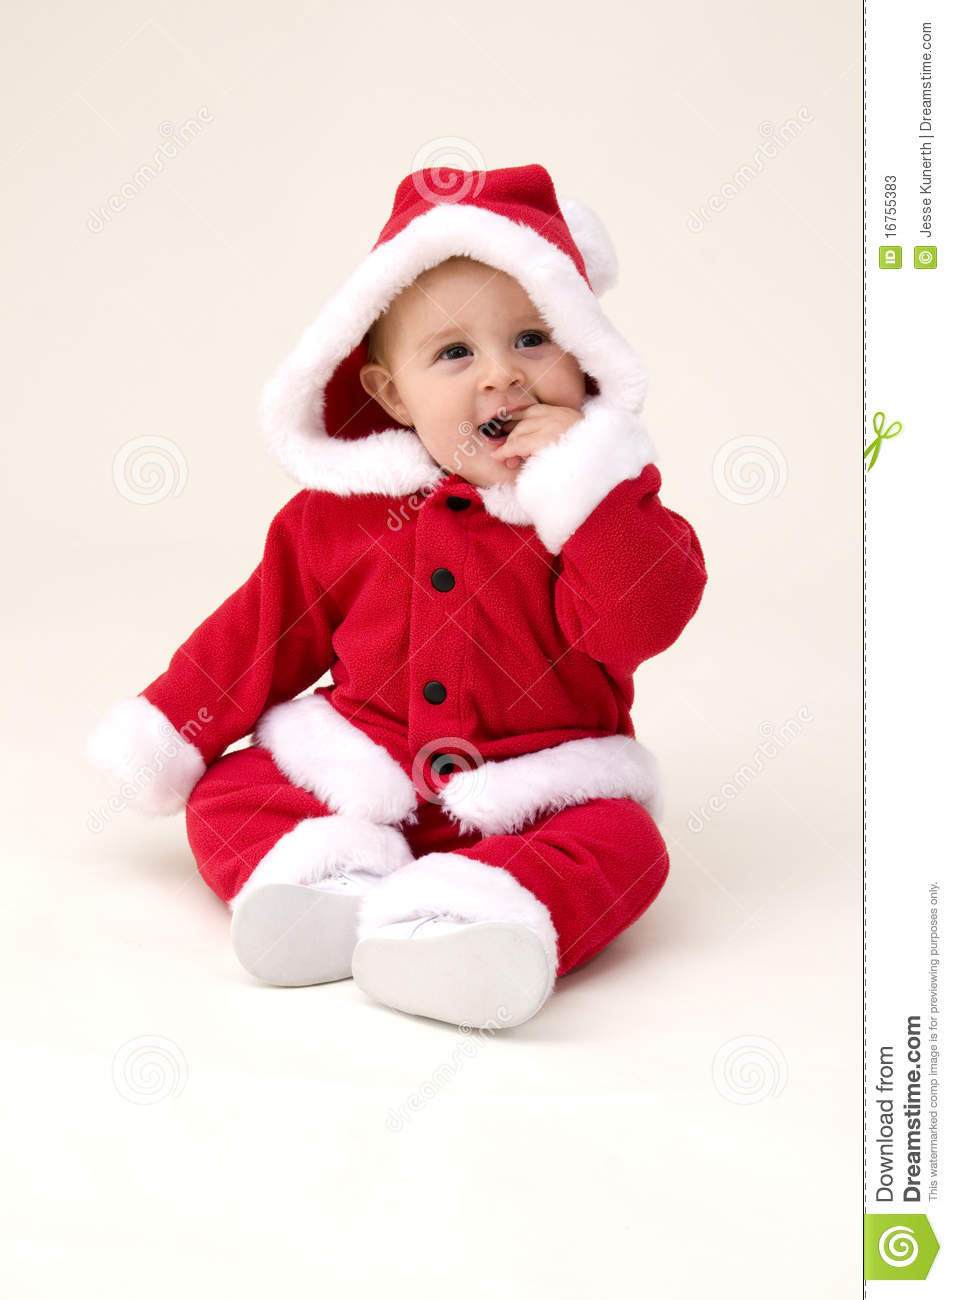 Santa Claus Costumes. Party & Occasions. Halloween. All Halloween Costumes. Santa Claus Hat Plush Velvet Red Costume Accessory With Fur Deluxe Quality. Product Image. Price $ 6. We focused on the bestselling products customers like you want most in categories like Baby, Clothing, Electronics and Health & Beauty.